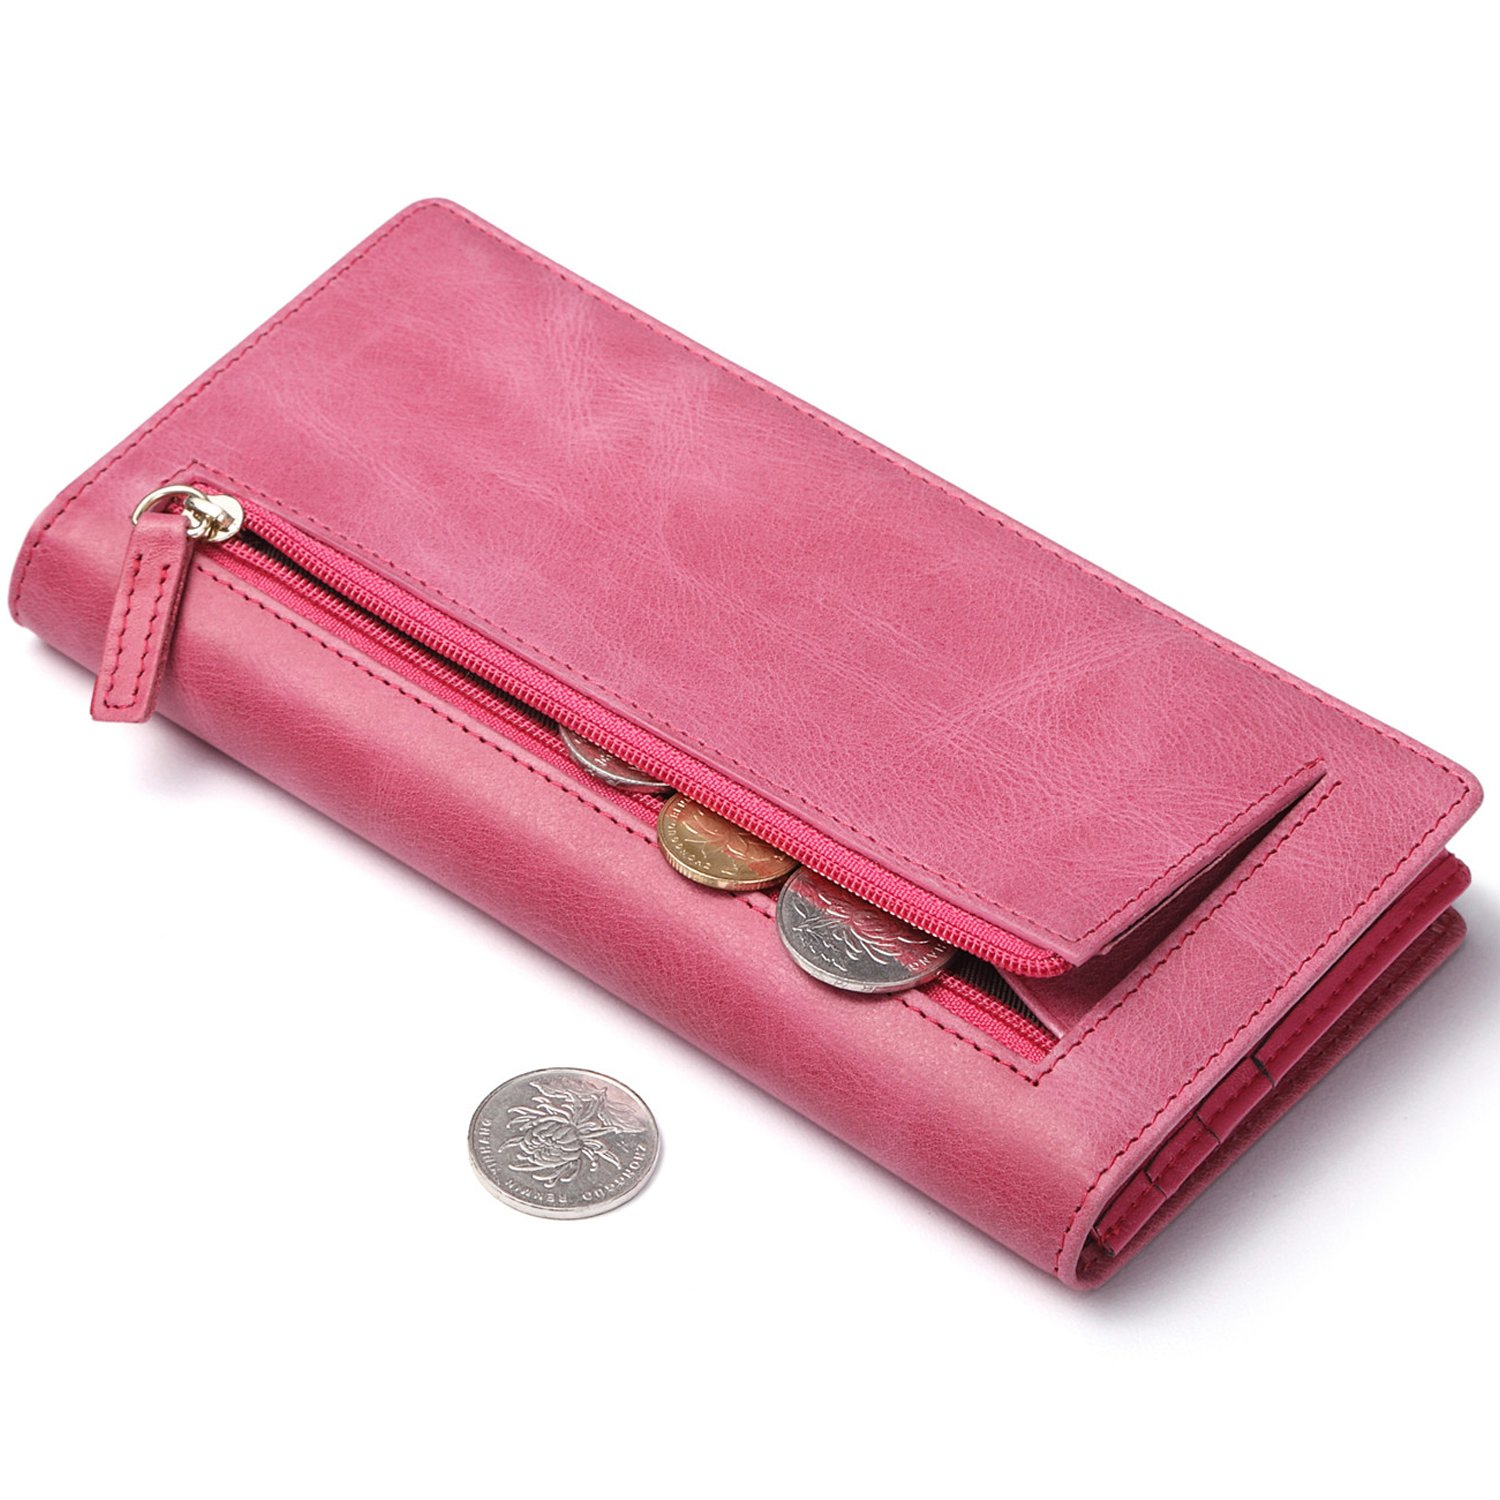 Huztencor Slim Womens Walllets RFID Blocking Bifold Multi Credit Card Holder Card Case Long Thin Wallet for Women with Zipper Pocket Pink